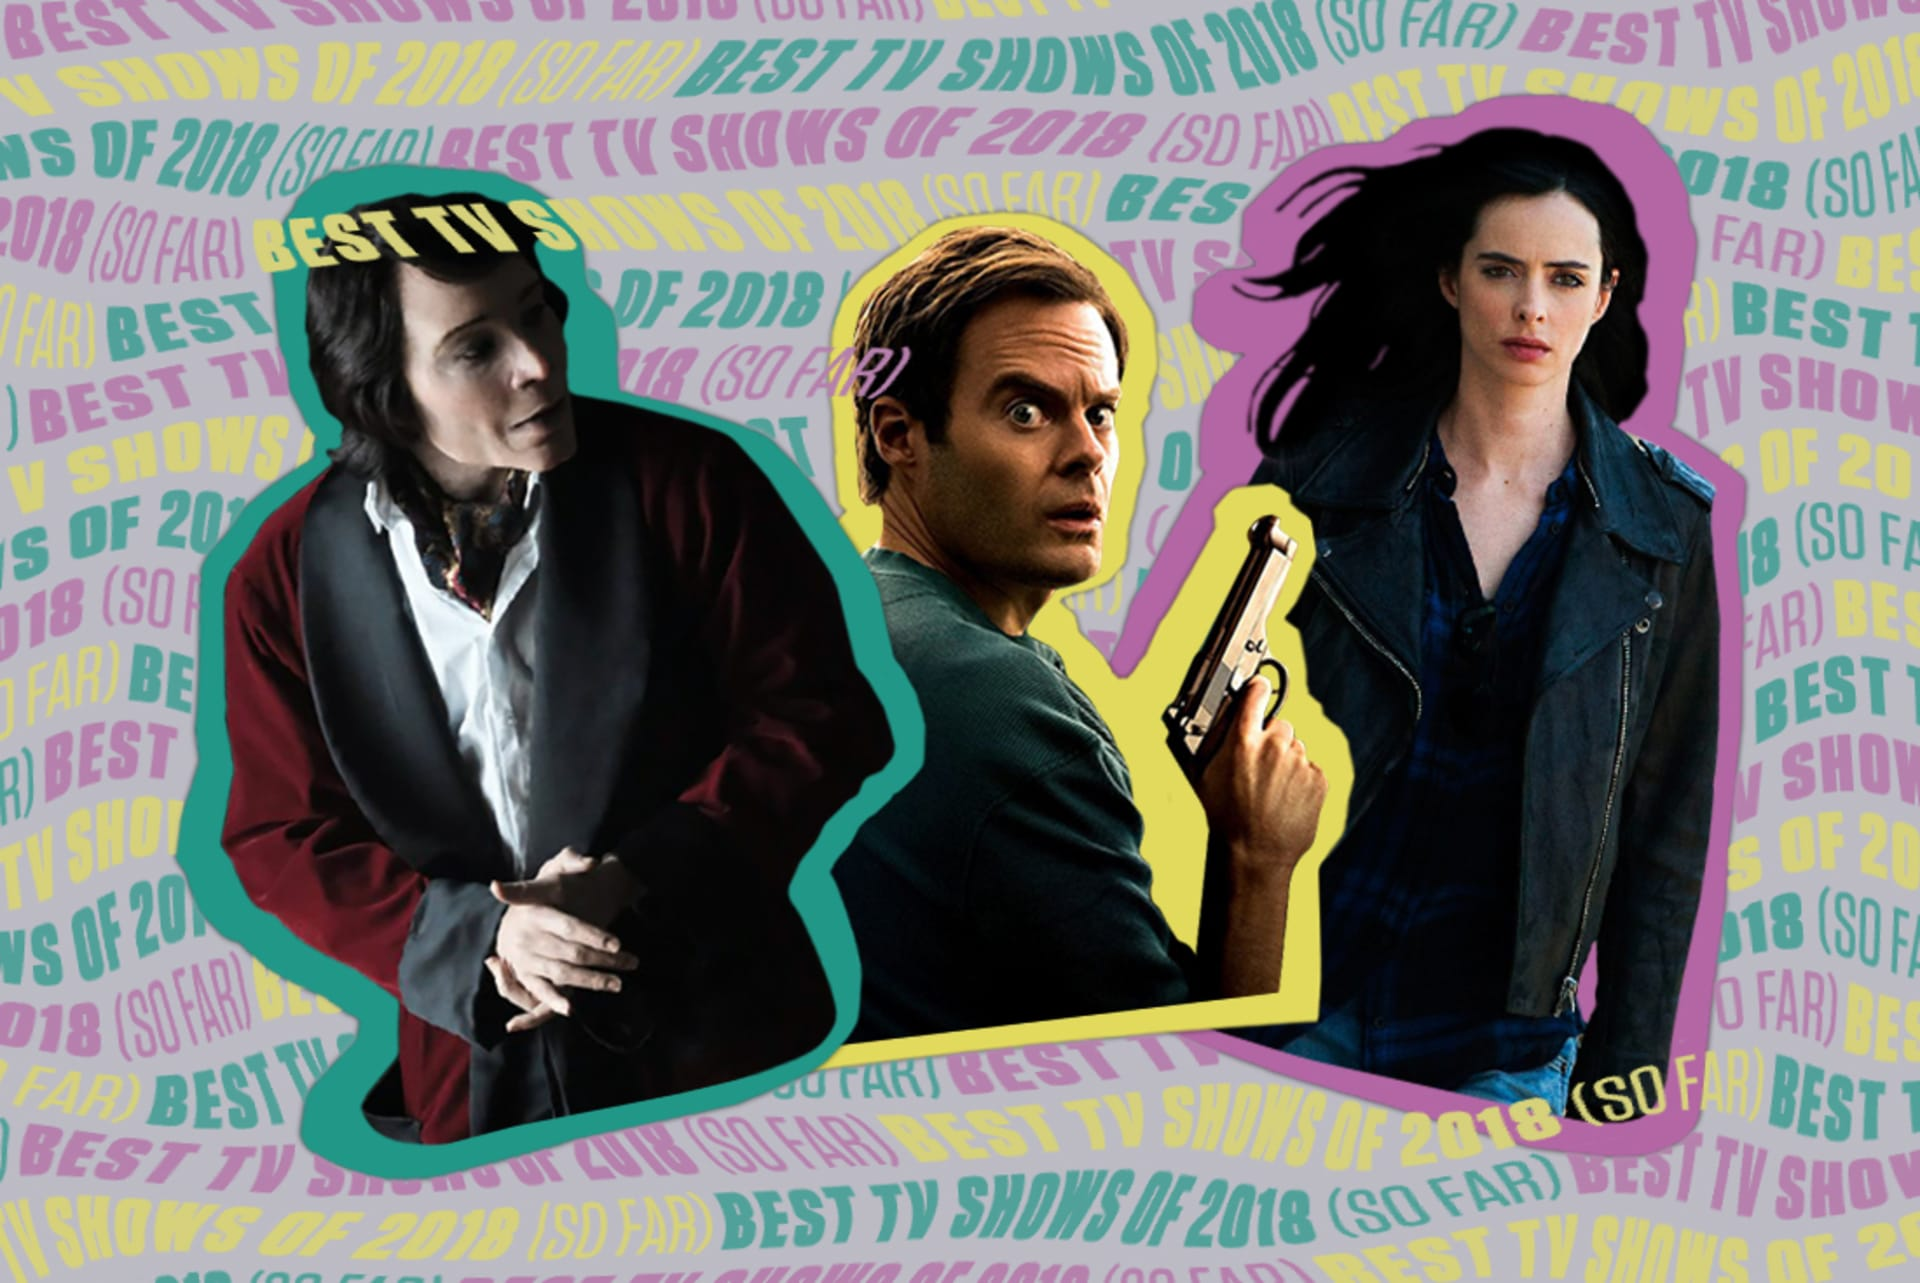 Best TV Shows of 2018 (so far)